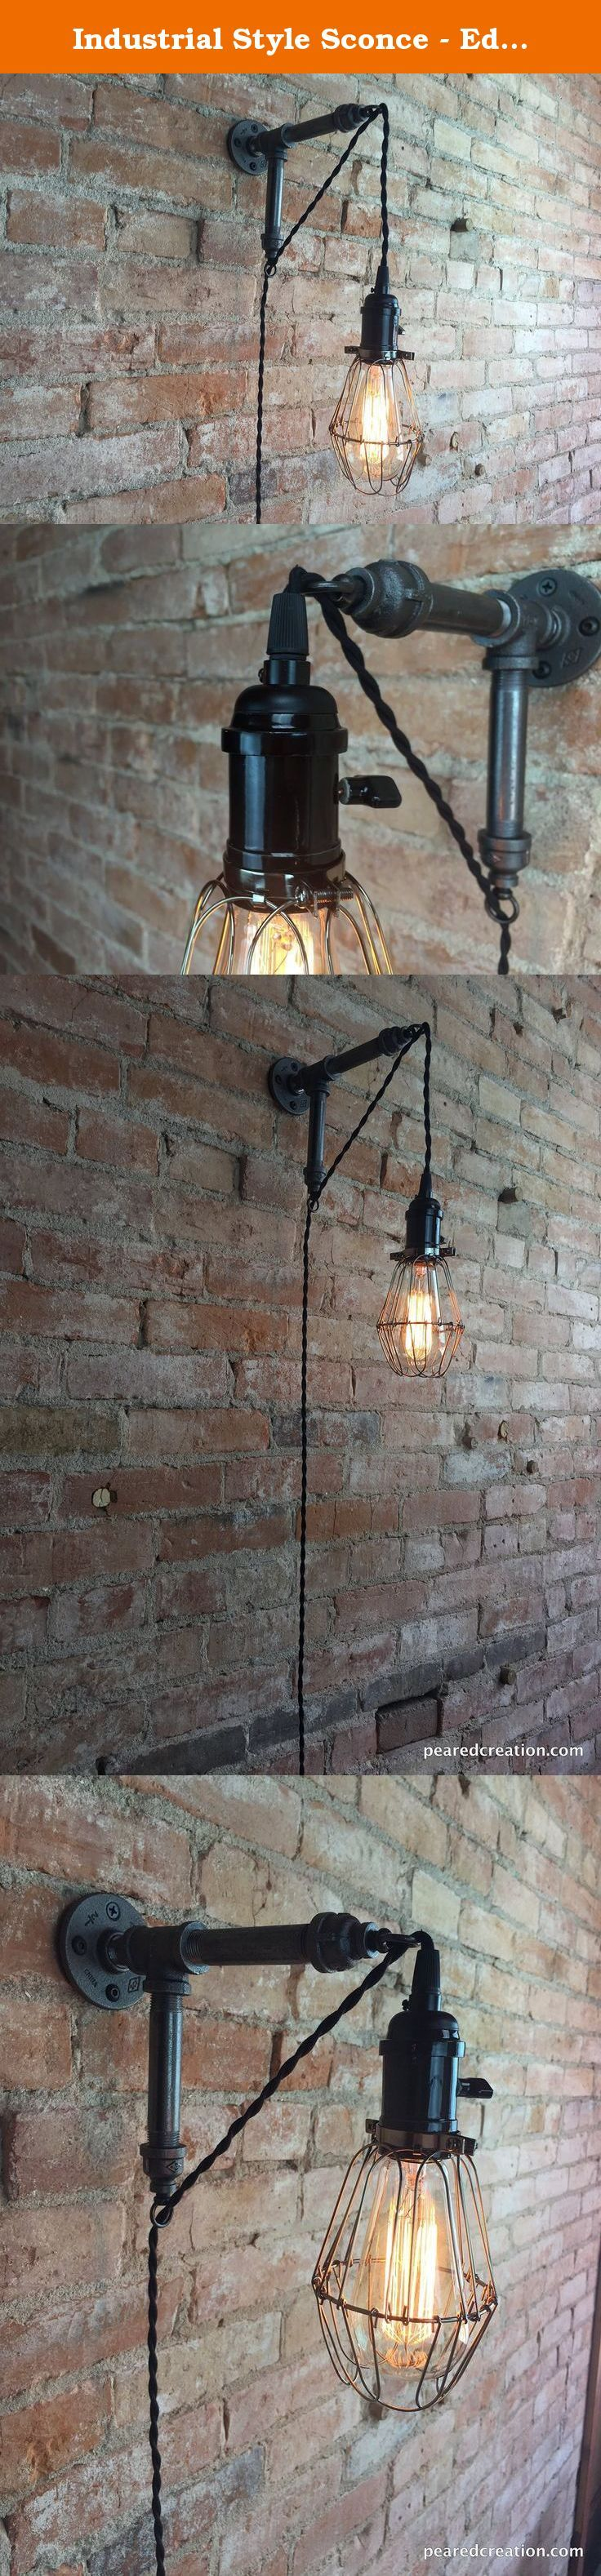 Industrial Style Sconce - Edison Bulb Lamp - Pendant Lights. We brought simplicity and ease of installation to this industrial style wall sconce! This clever design lets you skip the direct wiring and place it virtually anywhere on your wall. The 12 foot cloth covered cord gives plenty of reach and actually becomes part of the design as it exits the sconce. A top of the line antique bronze socket dims a 40 watt squirrel cage edison (bulb included in your purchase). The pendant hangs from…